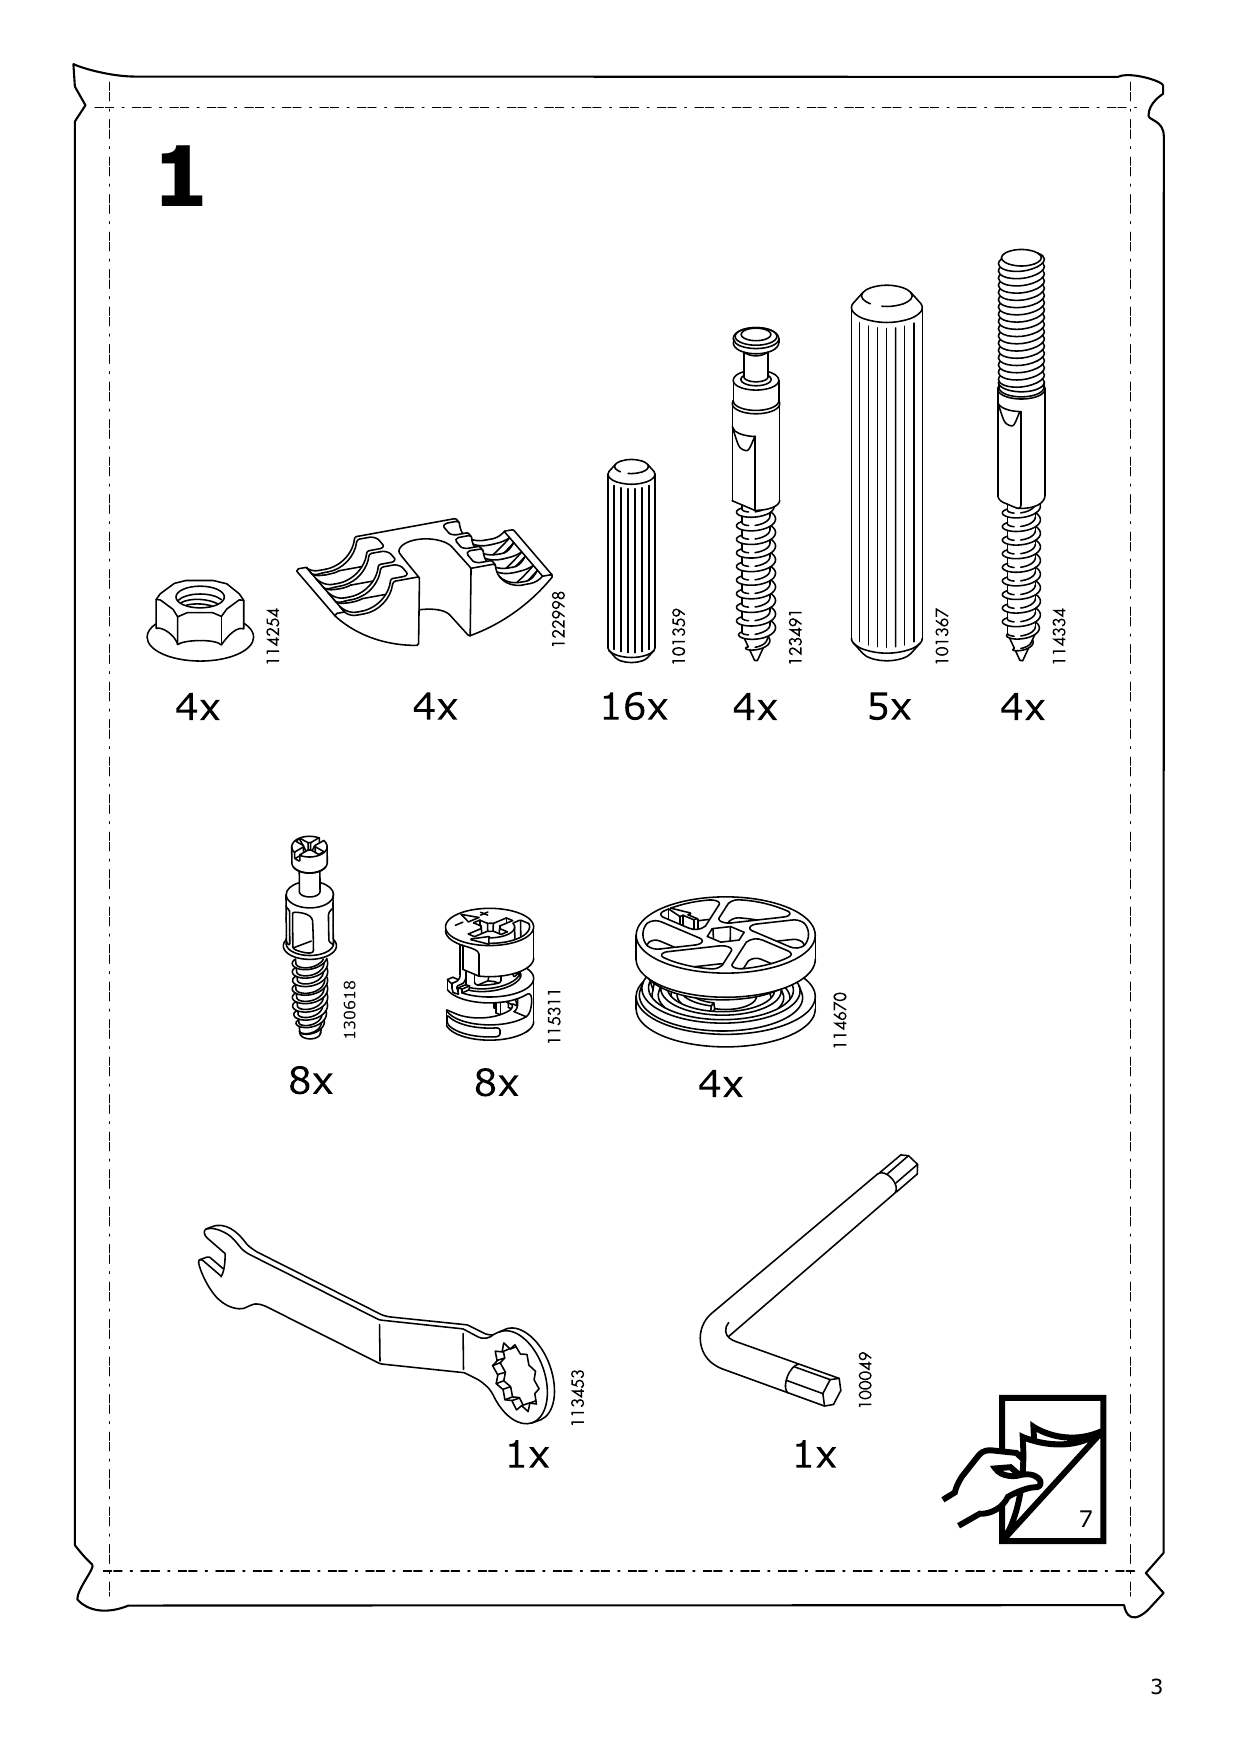 IKEA MALM Storage bed Assembly Instruction - 3